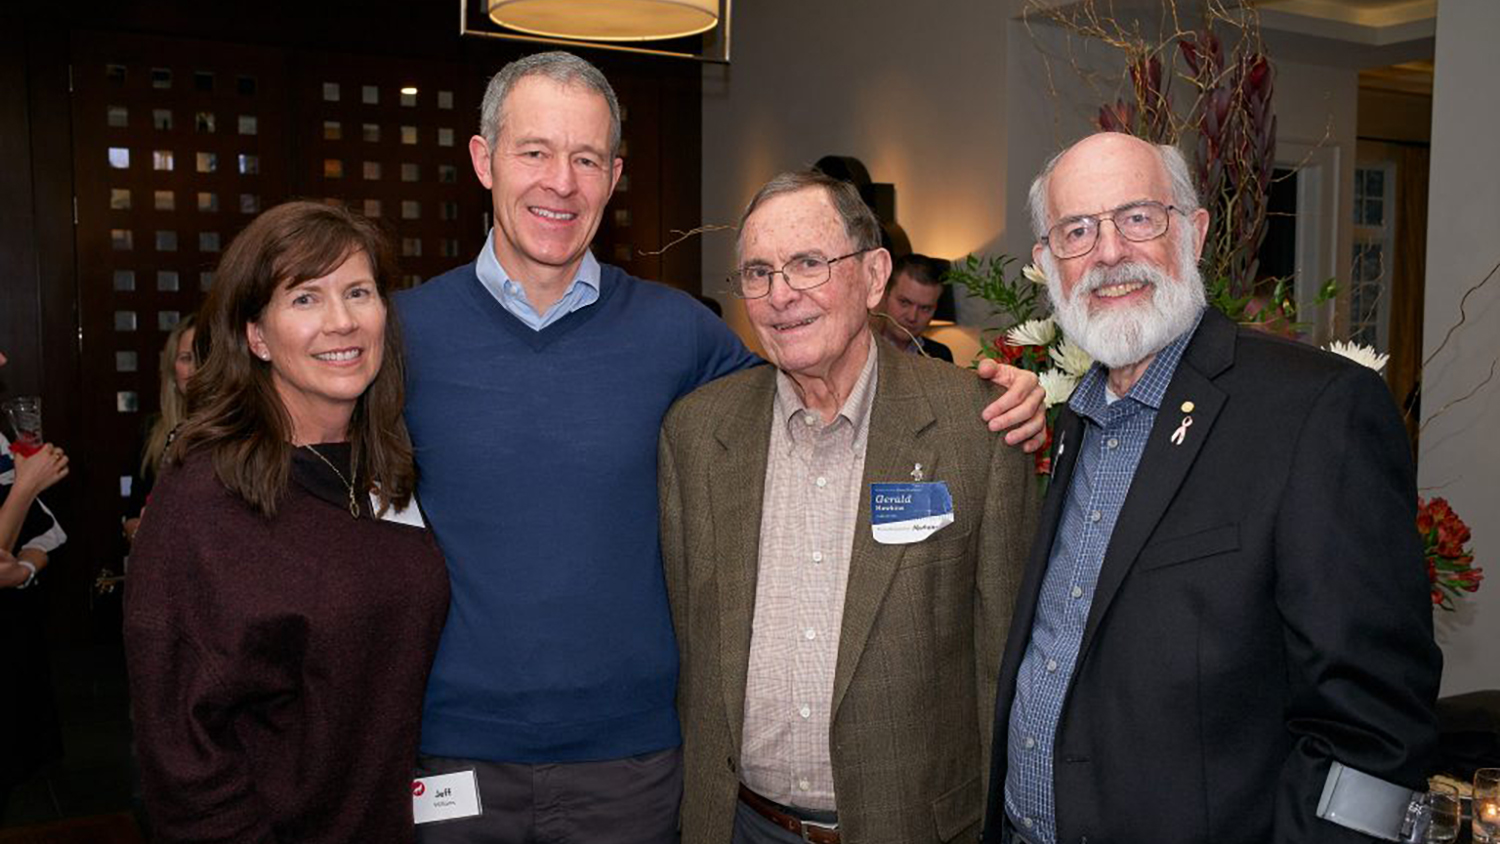 Melissa and Jeff Williams (L) celebrate the 50th anniversary of the Caldwell Fellows Program with Gerald Hawkins and Bill Sternbergh.